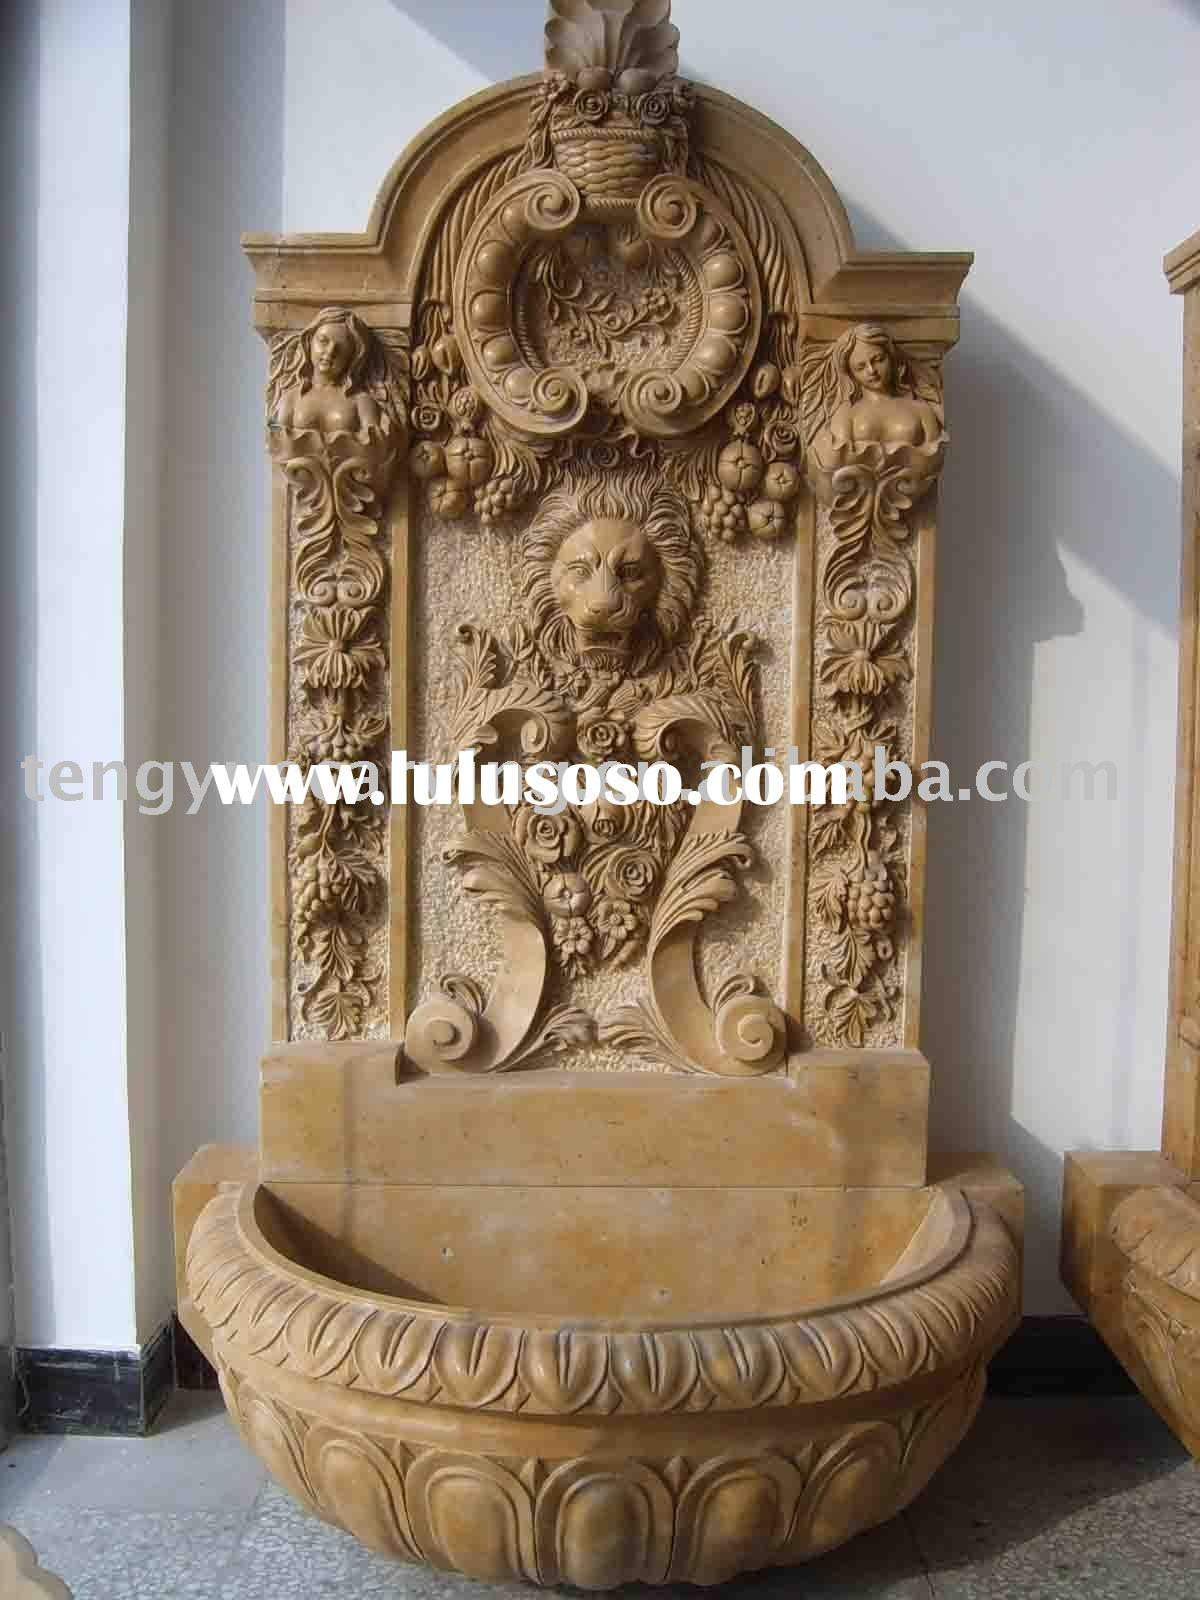 decorative wall fountains with lion head